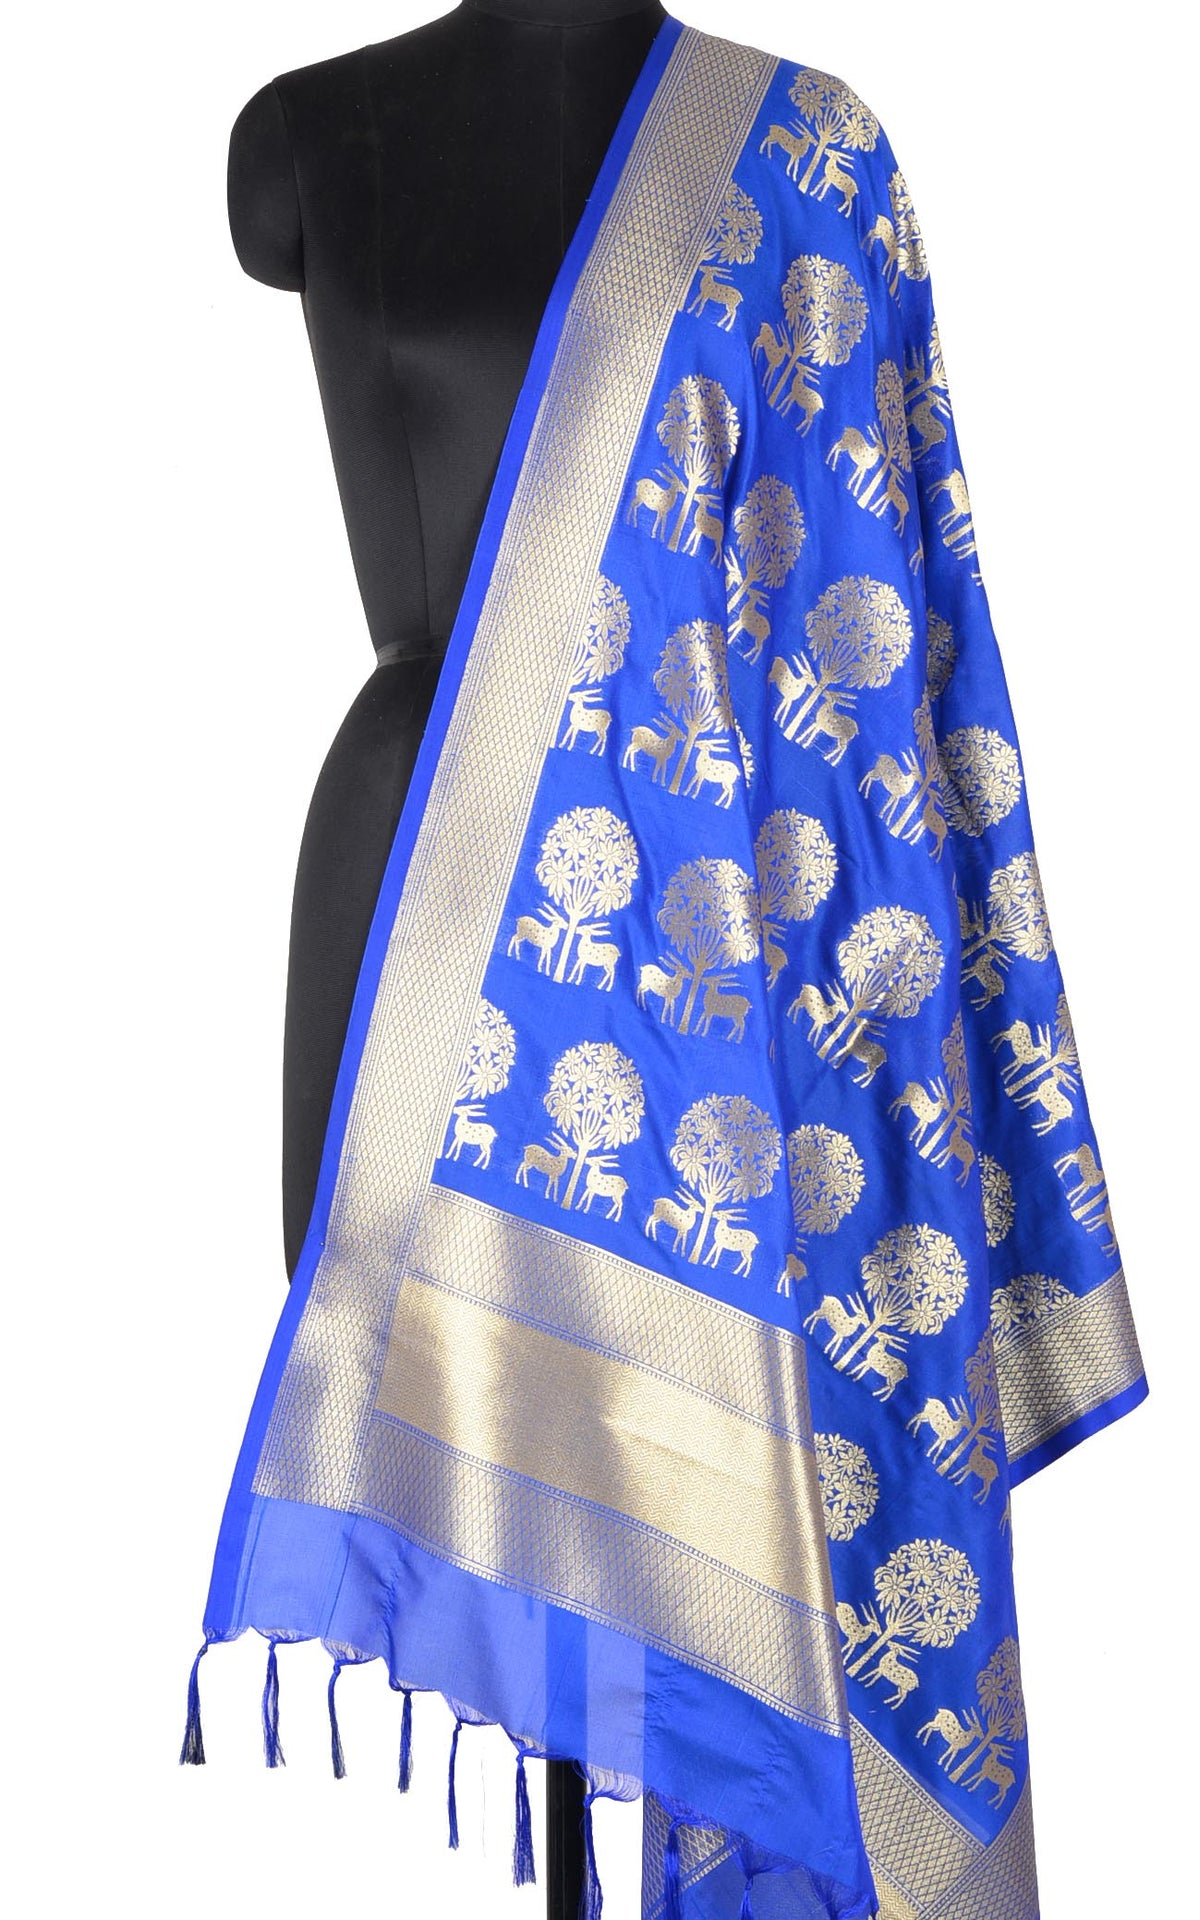 Royal Blue Banarasi dupatta with deer under tree motifs (1) Main